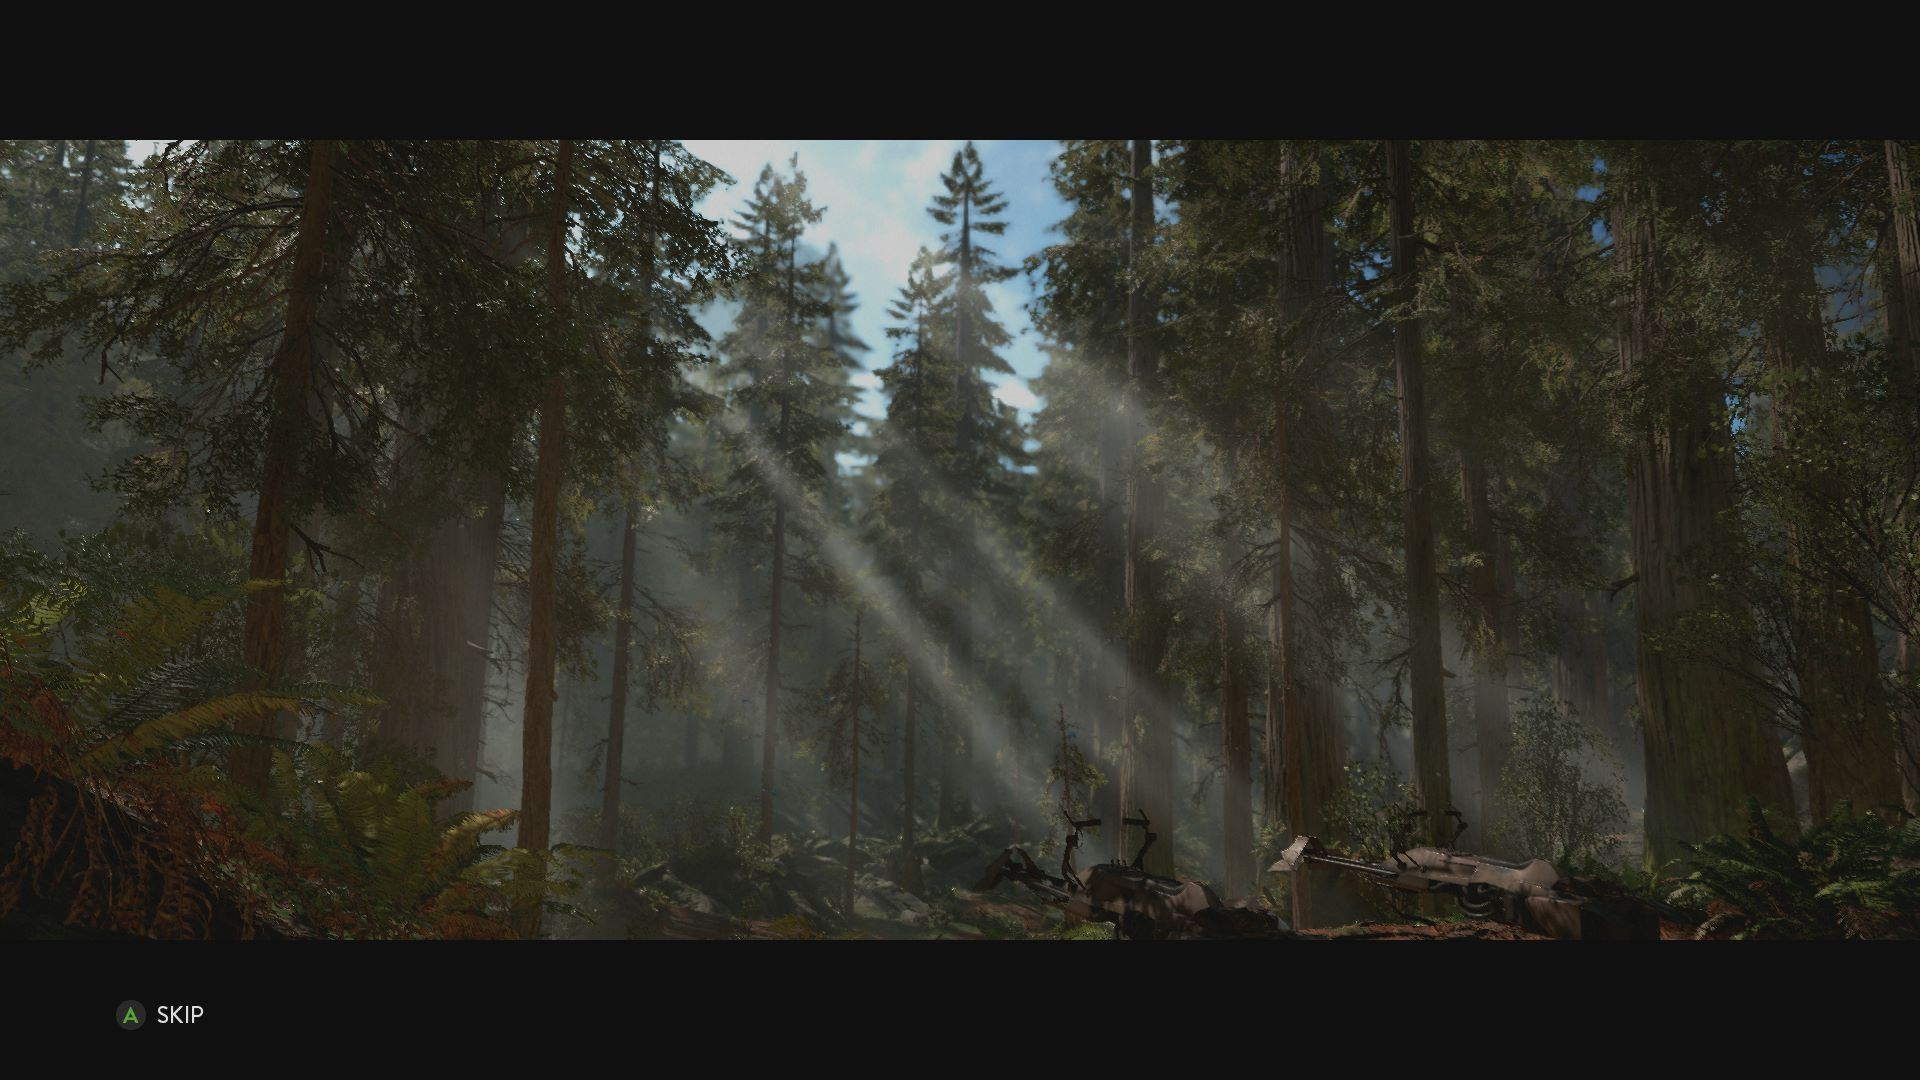 Star Wars Battlefront_Endor Comparison_1